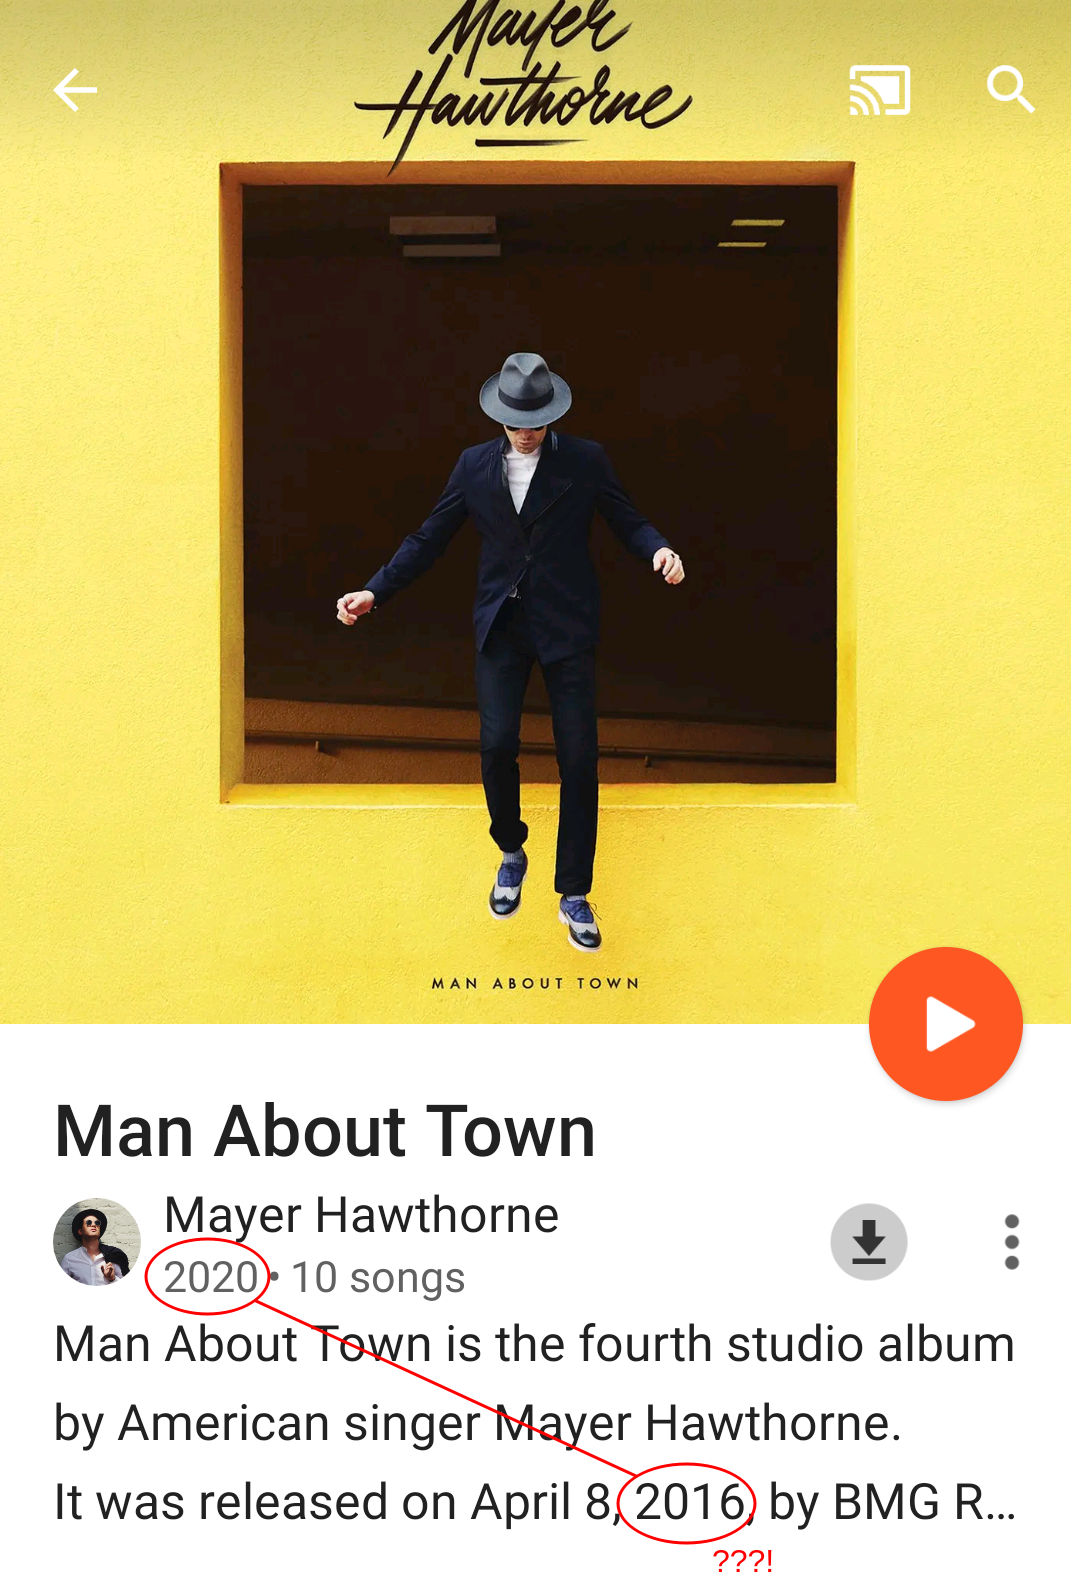 Mayer Hawthorne 'Man About Town' album in GPM with conflicting year of release